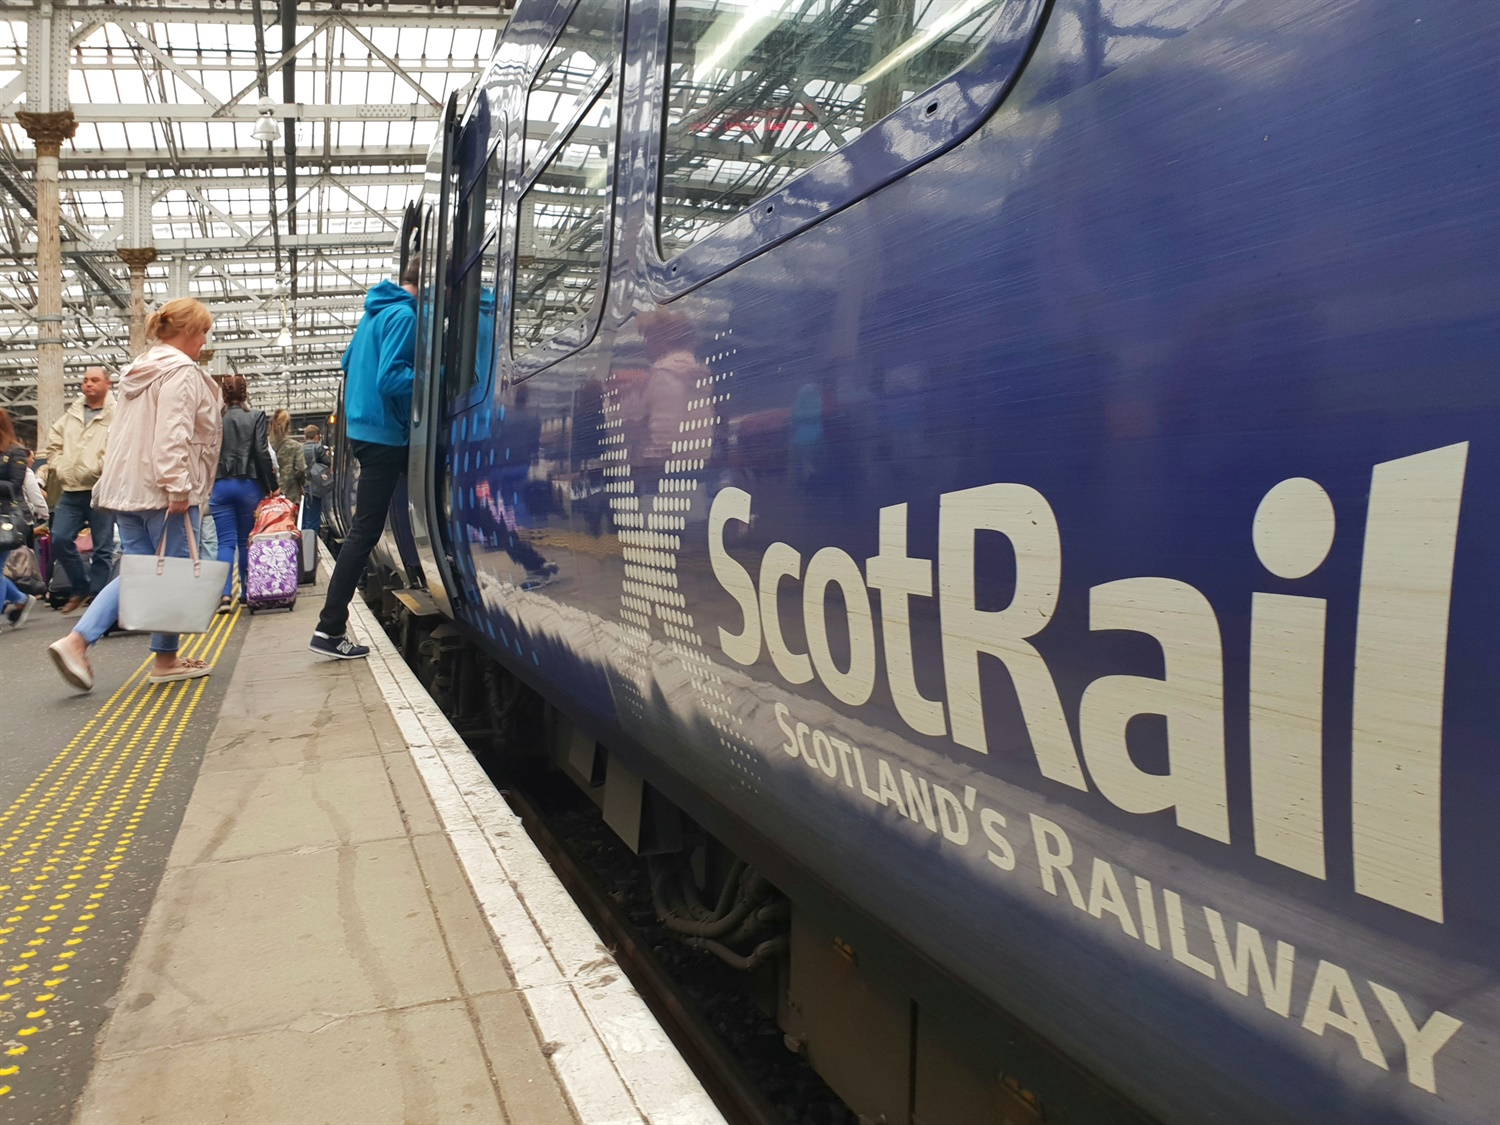 ScotRail submits £18m improvement plan in response to government improvement notice